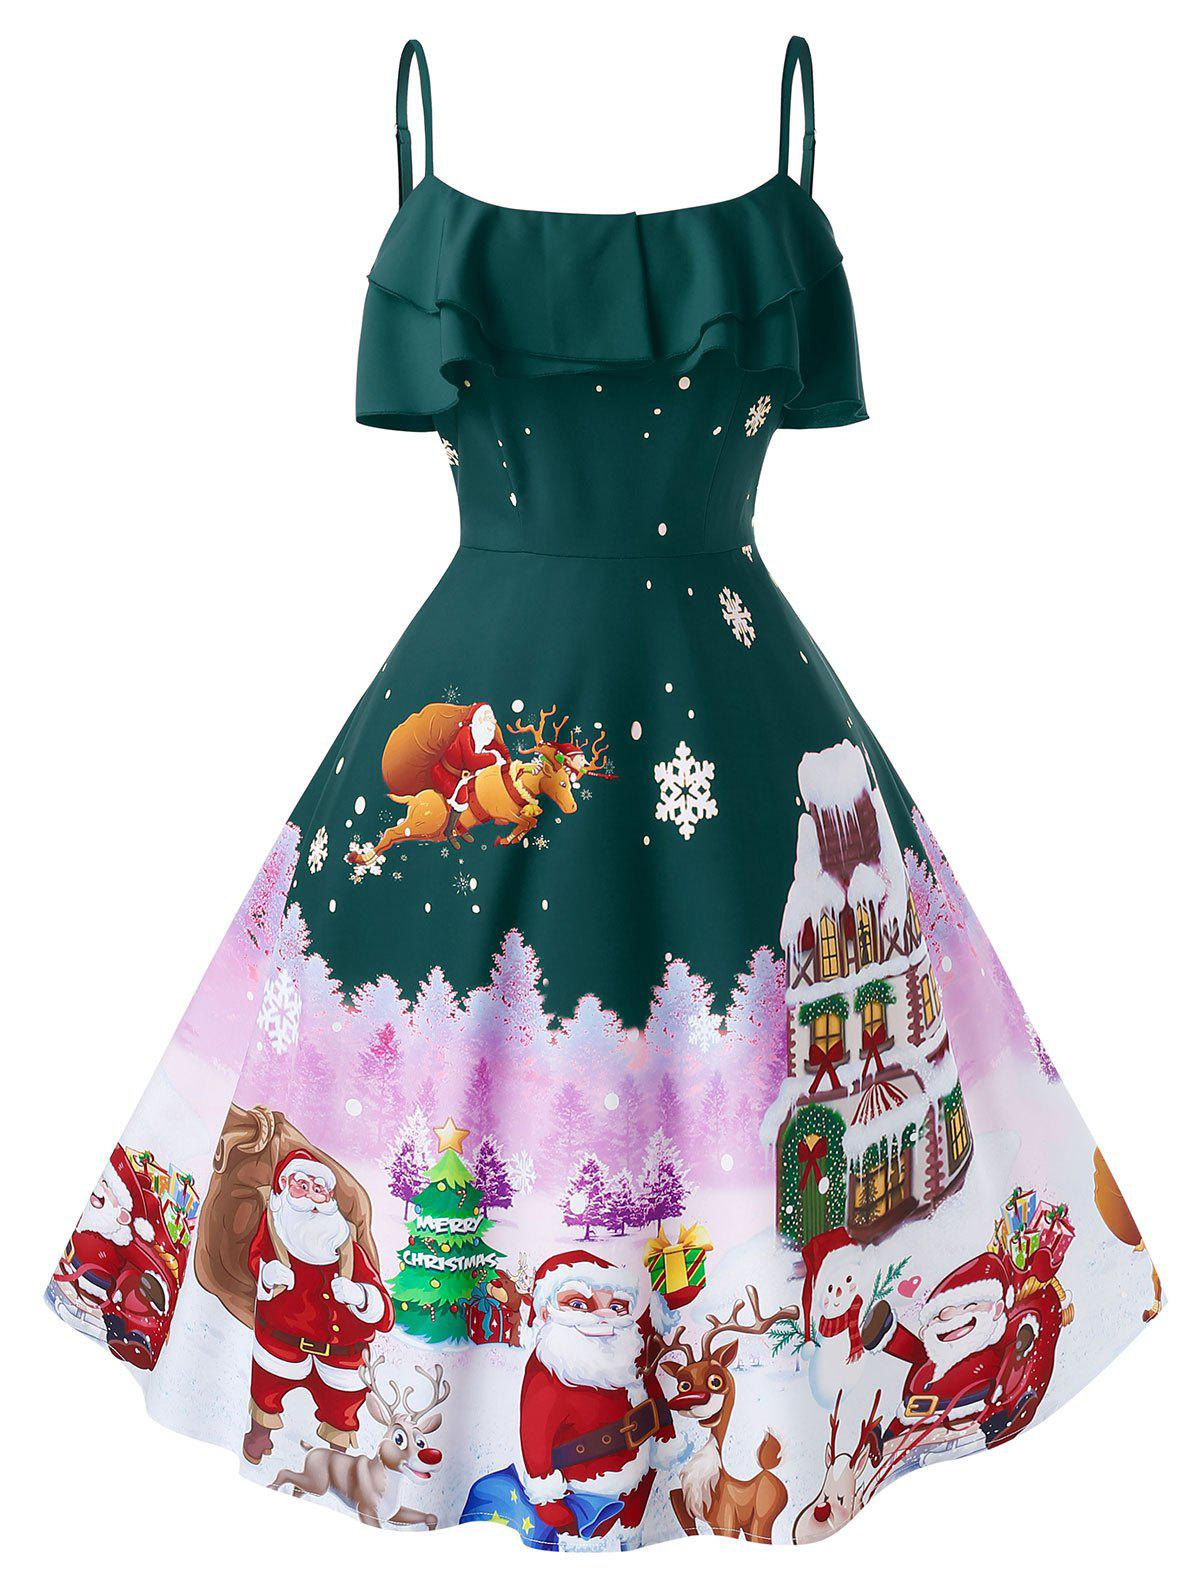 Plus Size Christmas Vintage Printed Pin Up Dress - DARK FOREST GREEN L